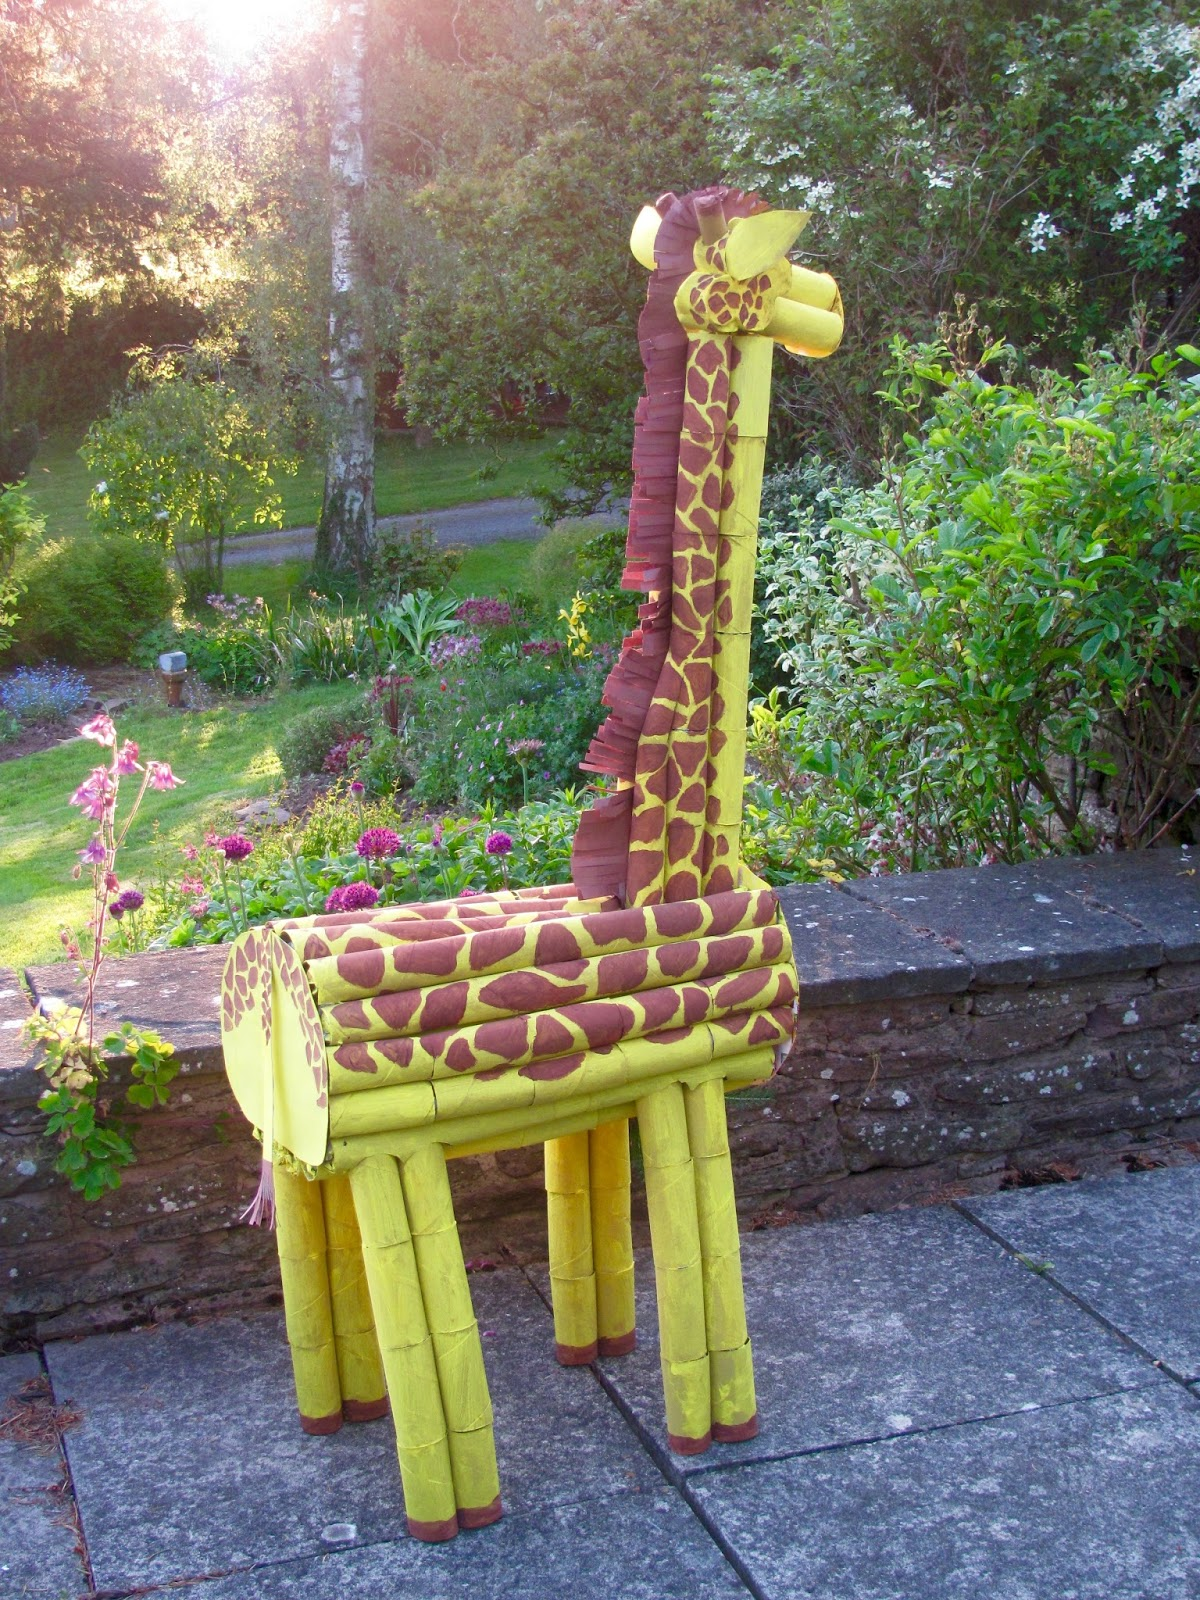 Heu0027ll be watching over me during the Make Your Own Zoo workshops in the Make and Take tent this Thursday. Weu0027d love to see you! & Jumble Tree: Thereu0027s a giraffe in my garden...